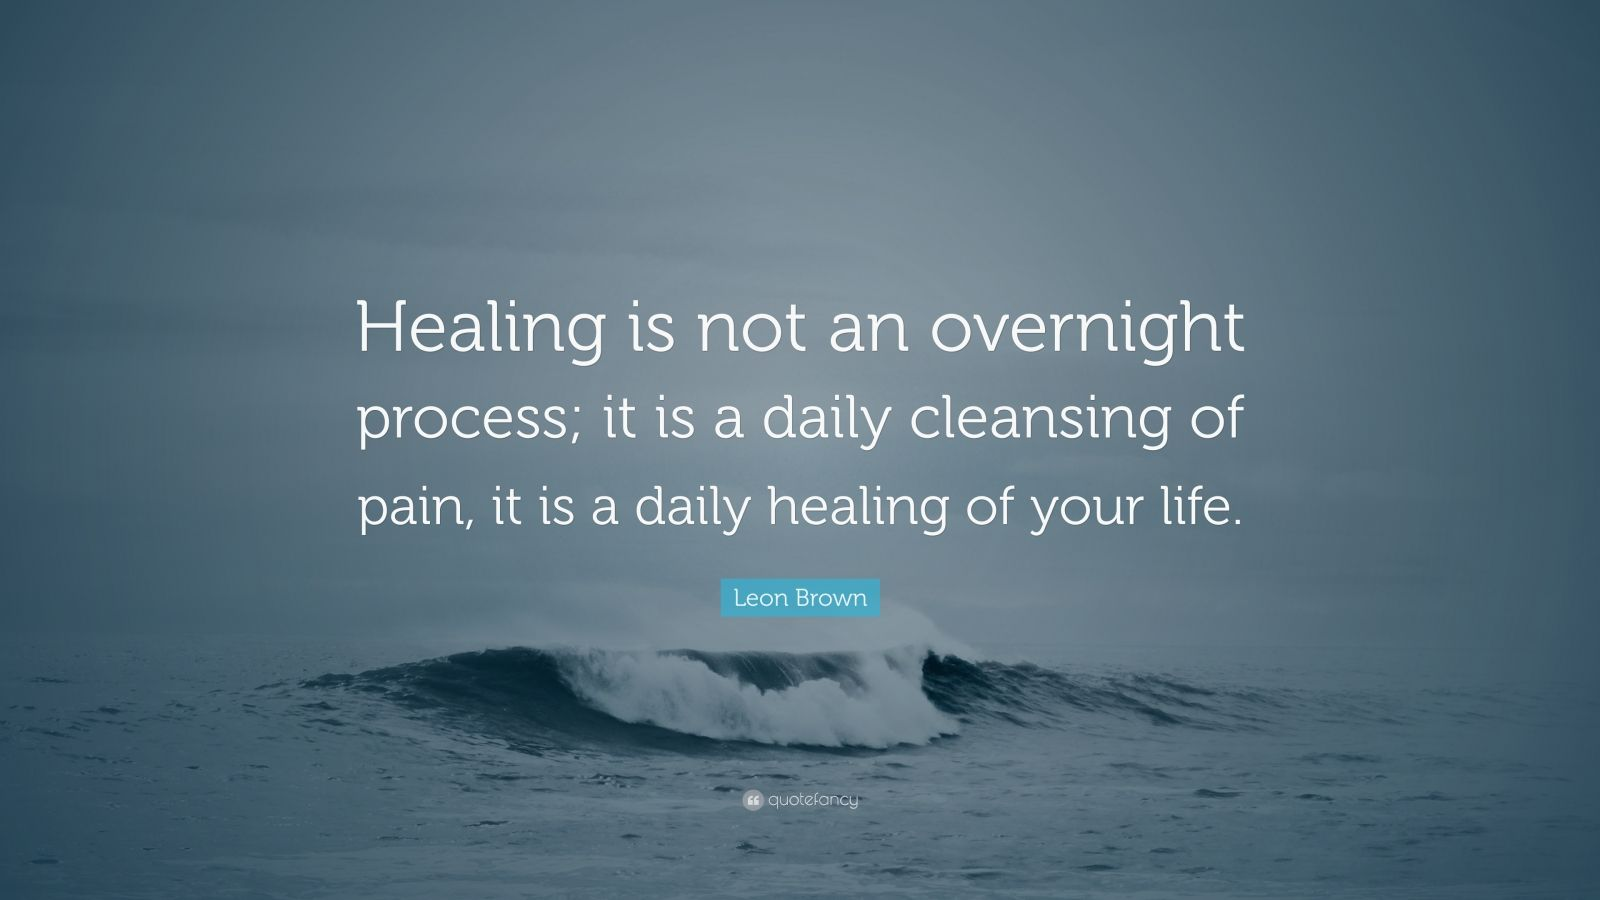 """Leon Brown Quote: """"Healing is not an overnight process; it is a daily cleansing of pain, it is a daily healing of your life."""""""